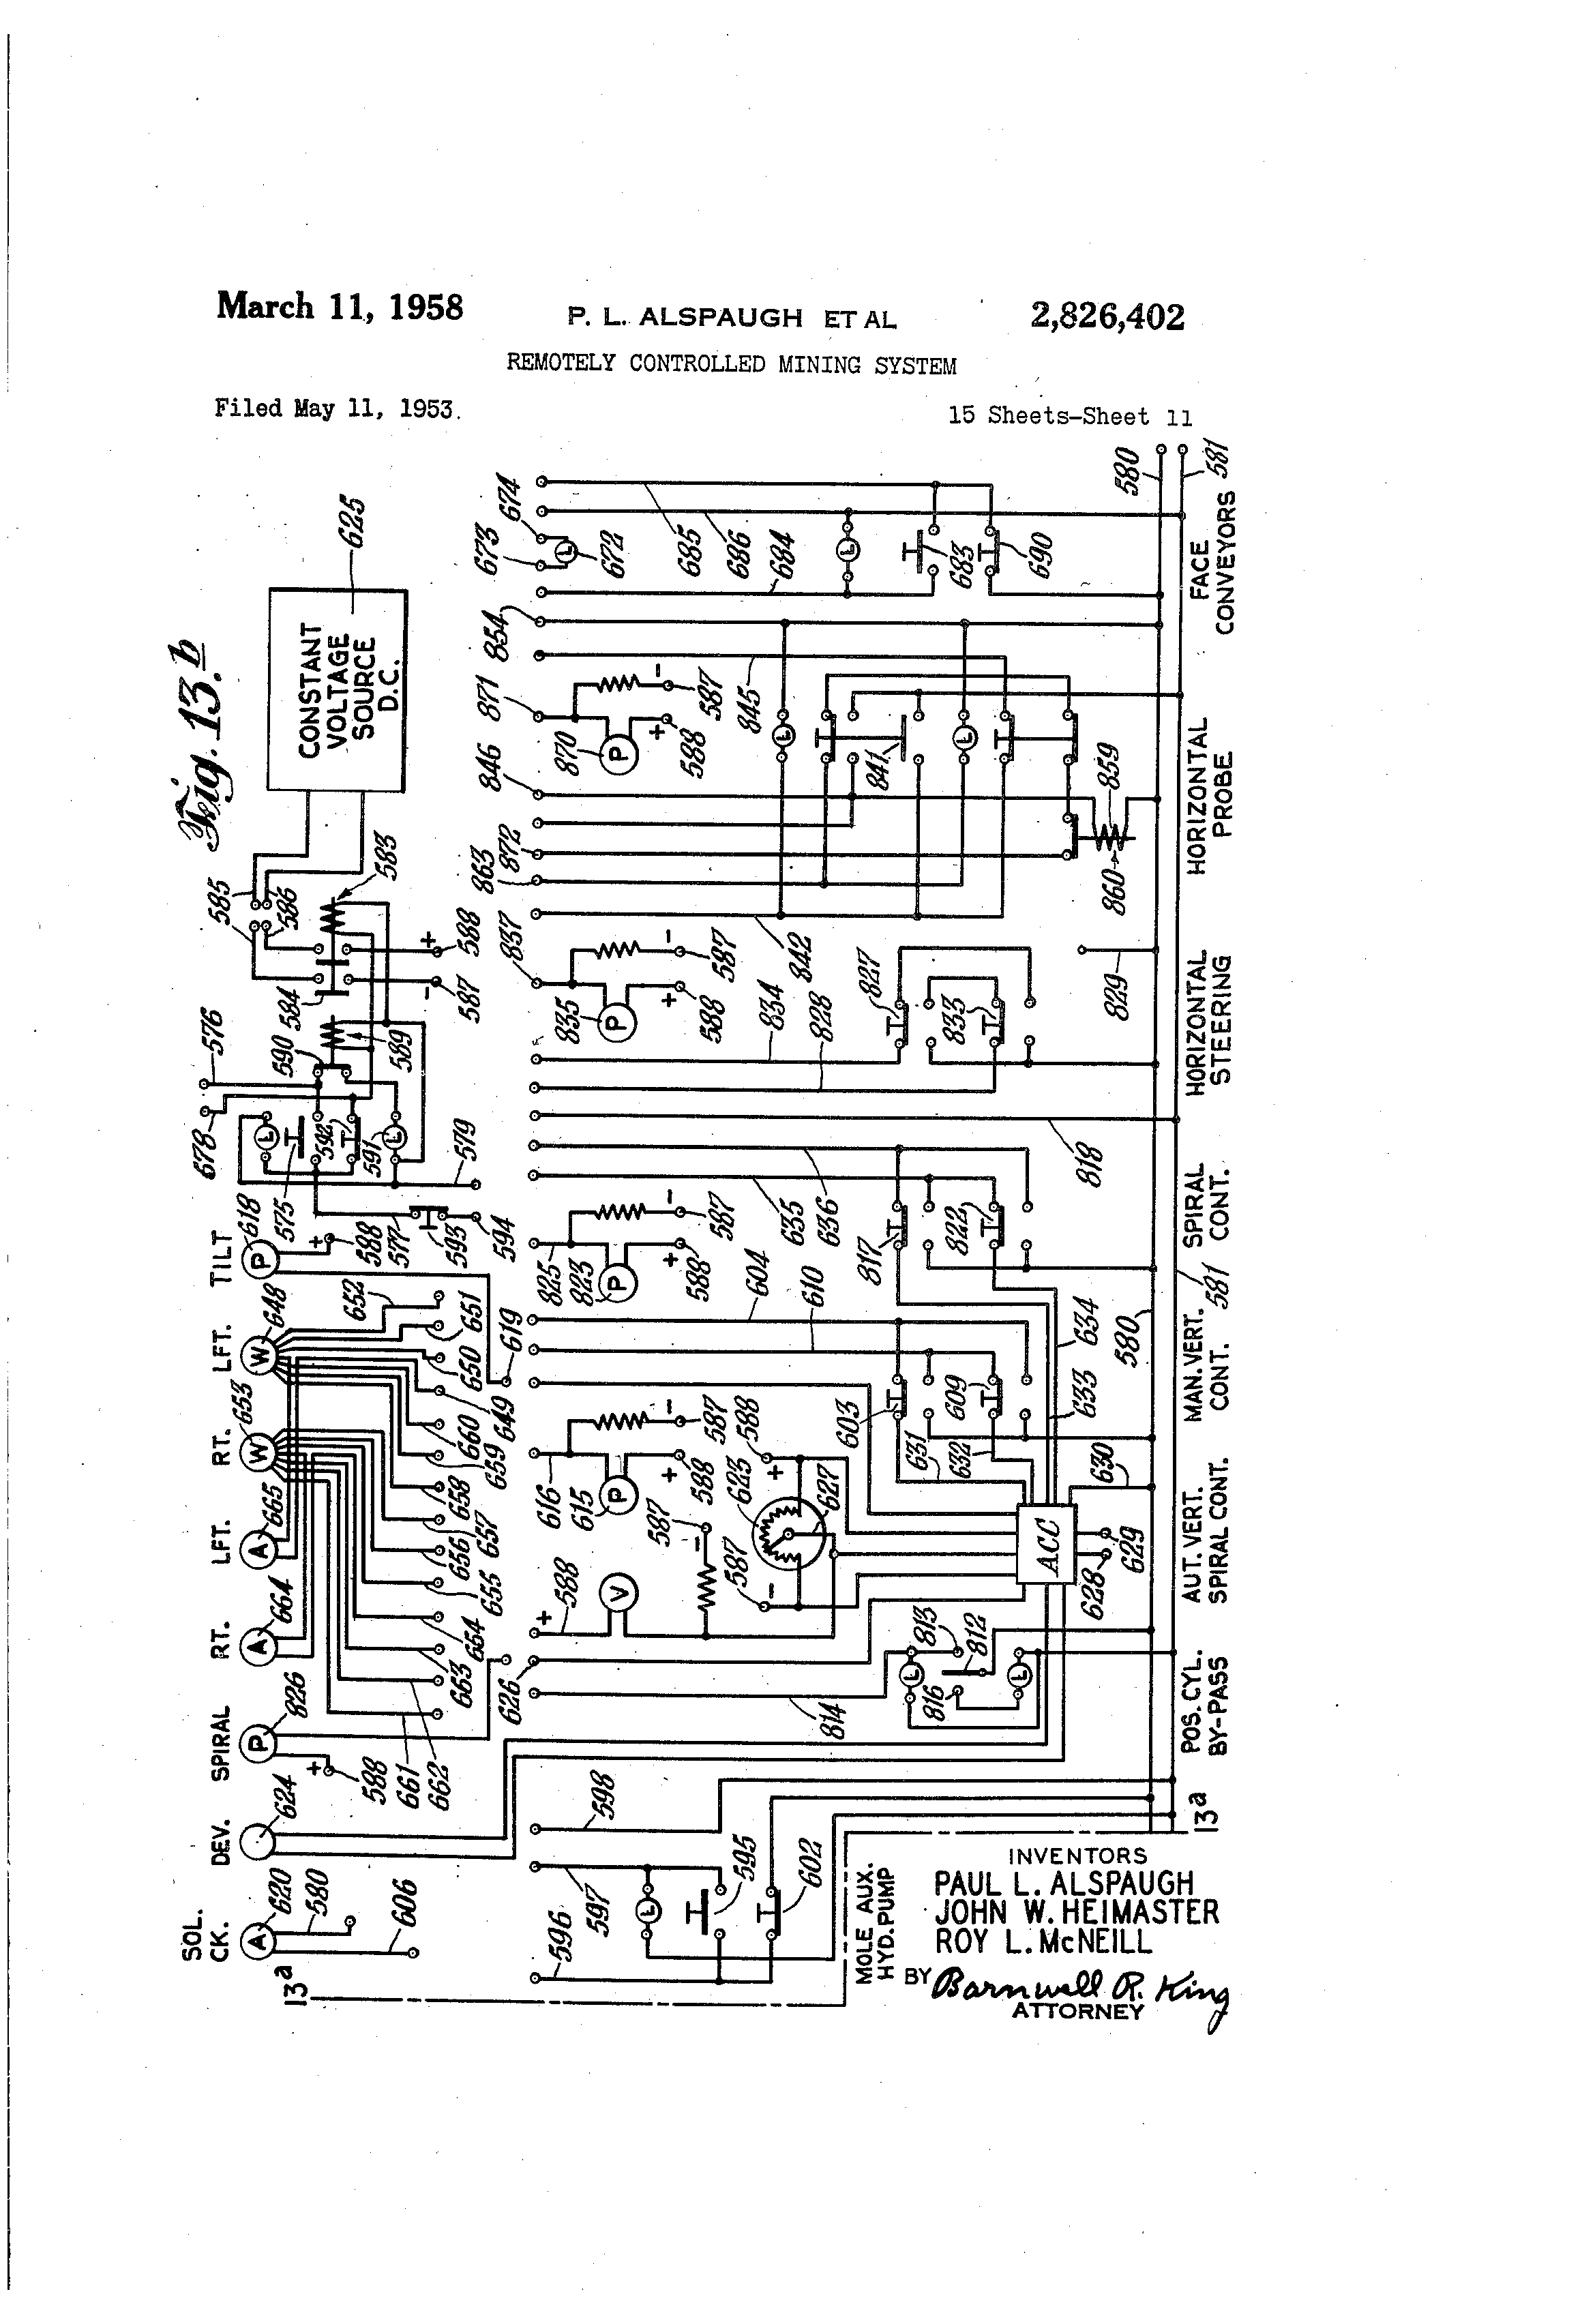 Viper 5904 User Manual Service And Repair Guide Wiring Diagram 300 Esp Alarm Free Engine 5902 Vs 5704